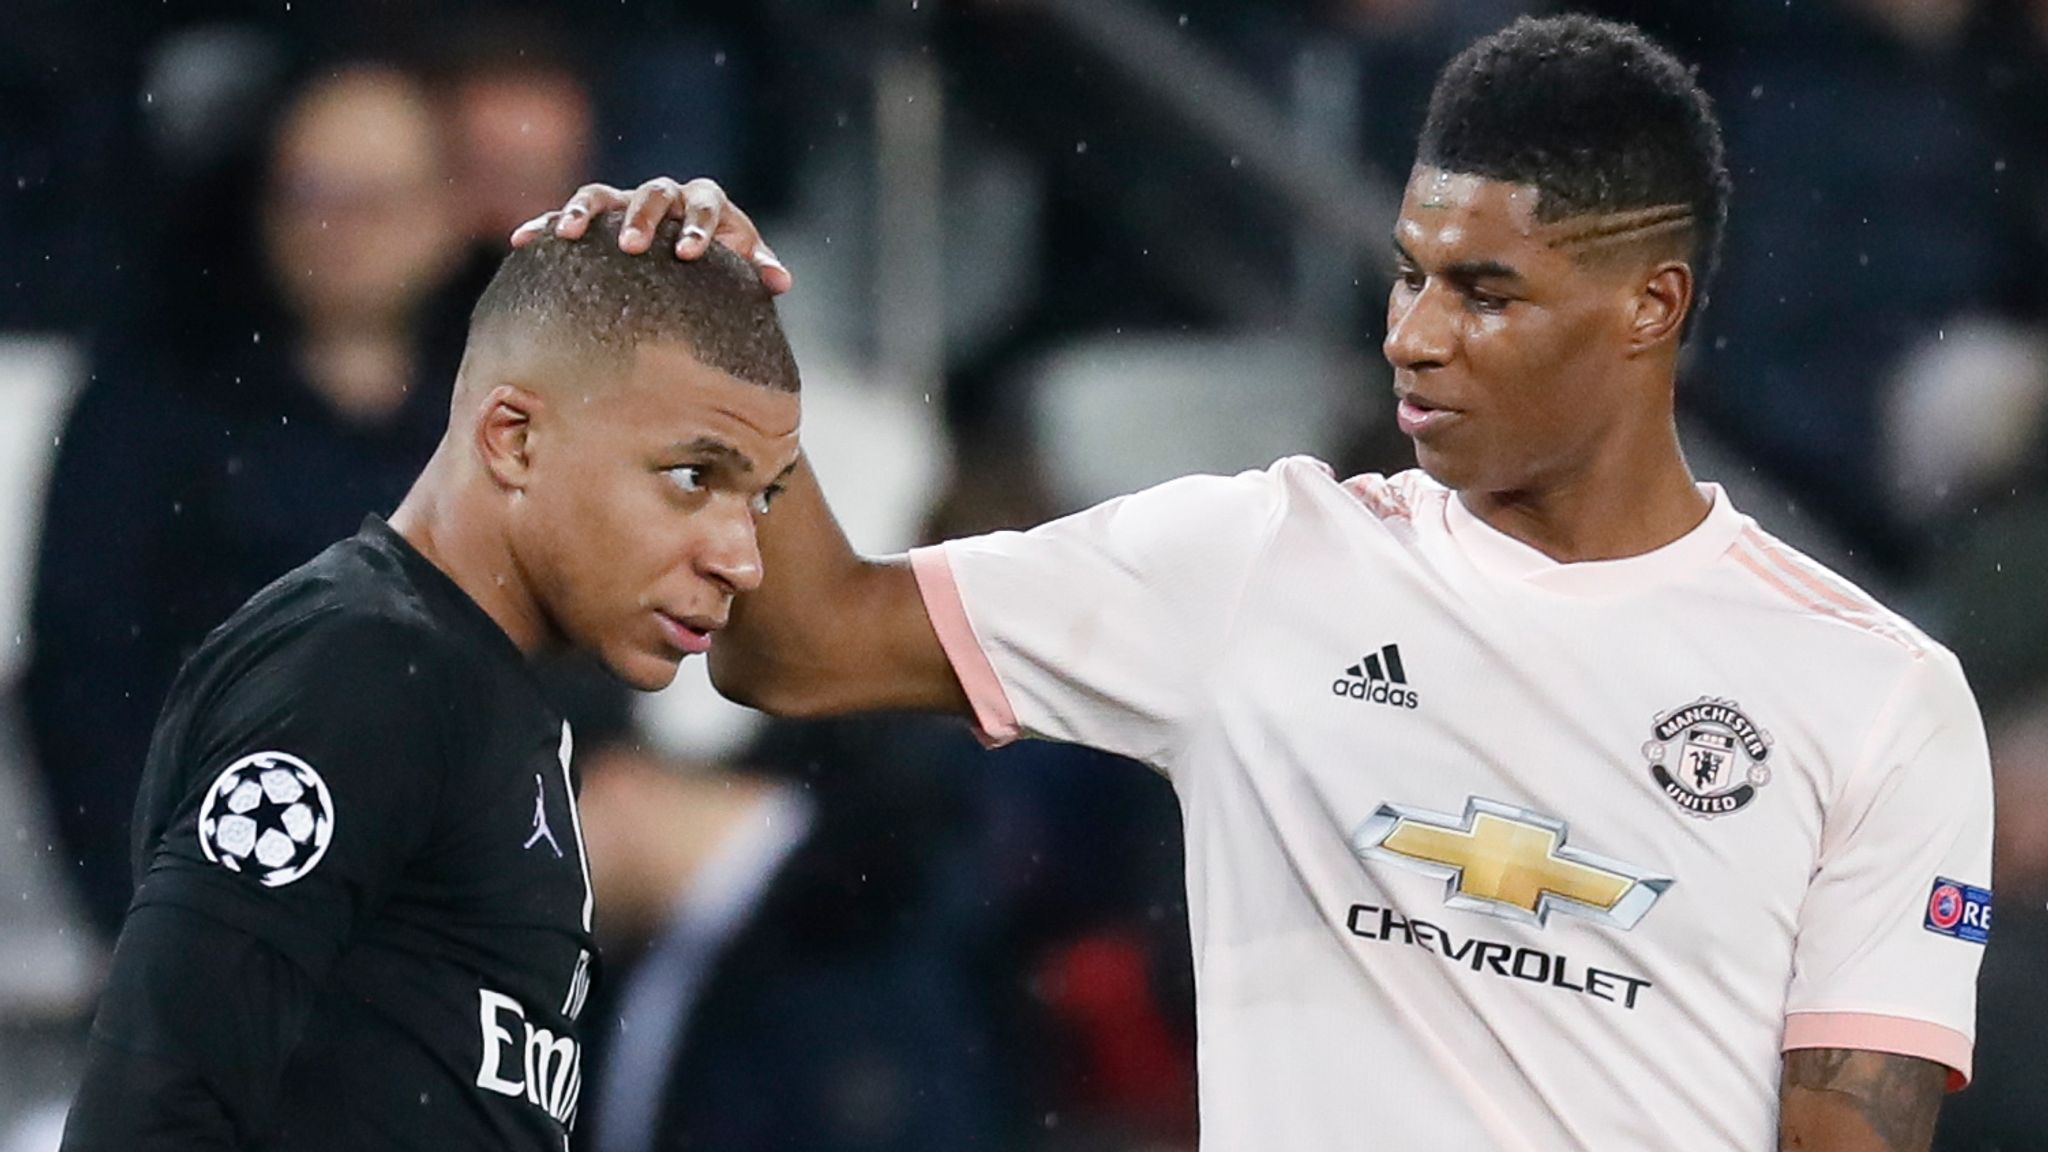 Kylian Mbappe (left) and Marcus Rashford are two of Europe's most exciting young players